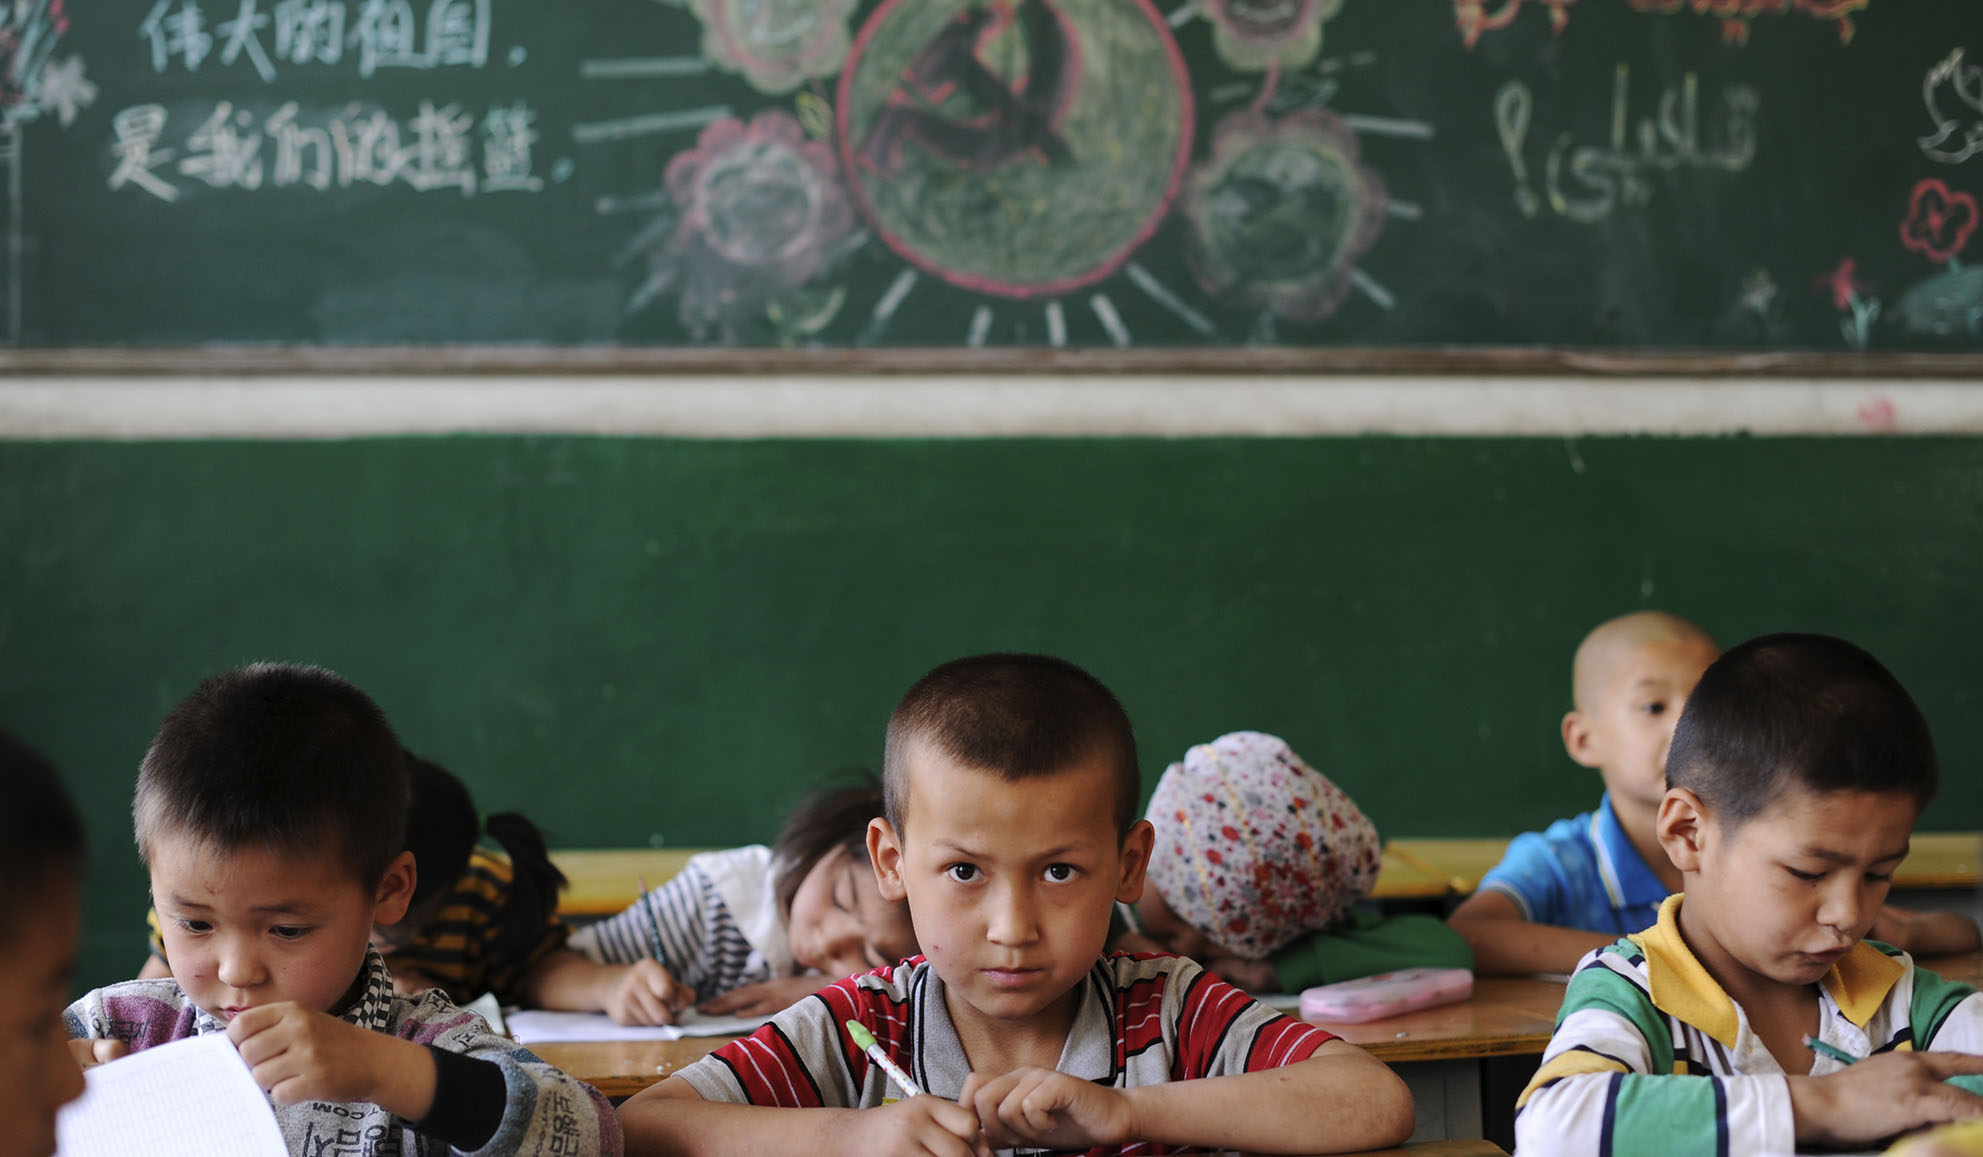 World Bank Cuts Funding for Controversial Uighur Schools in China